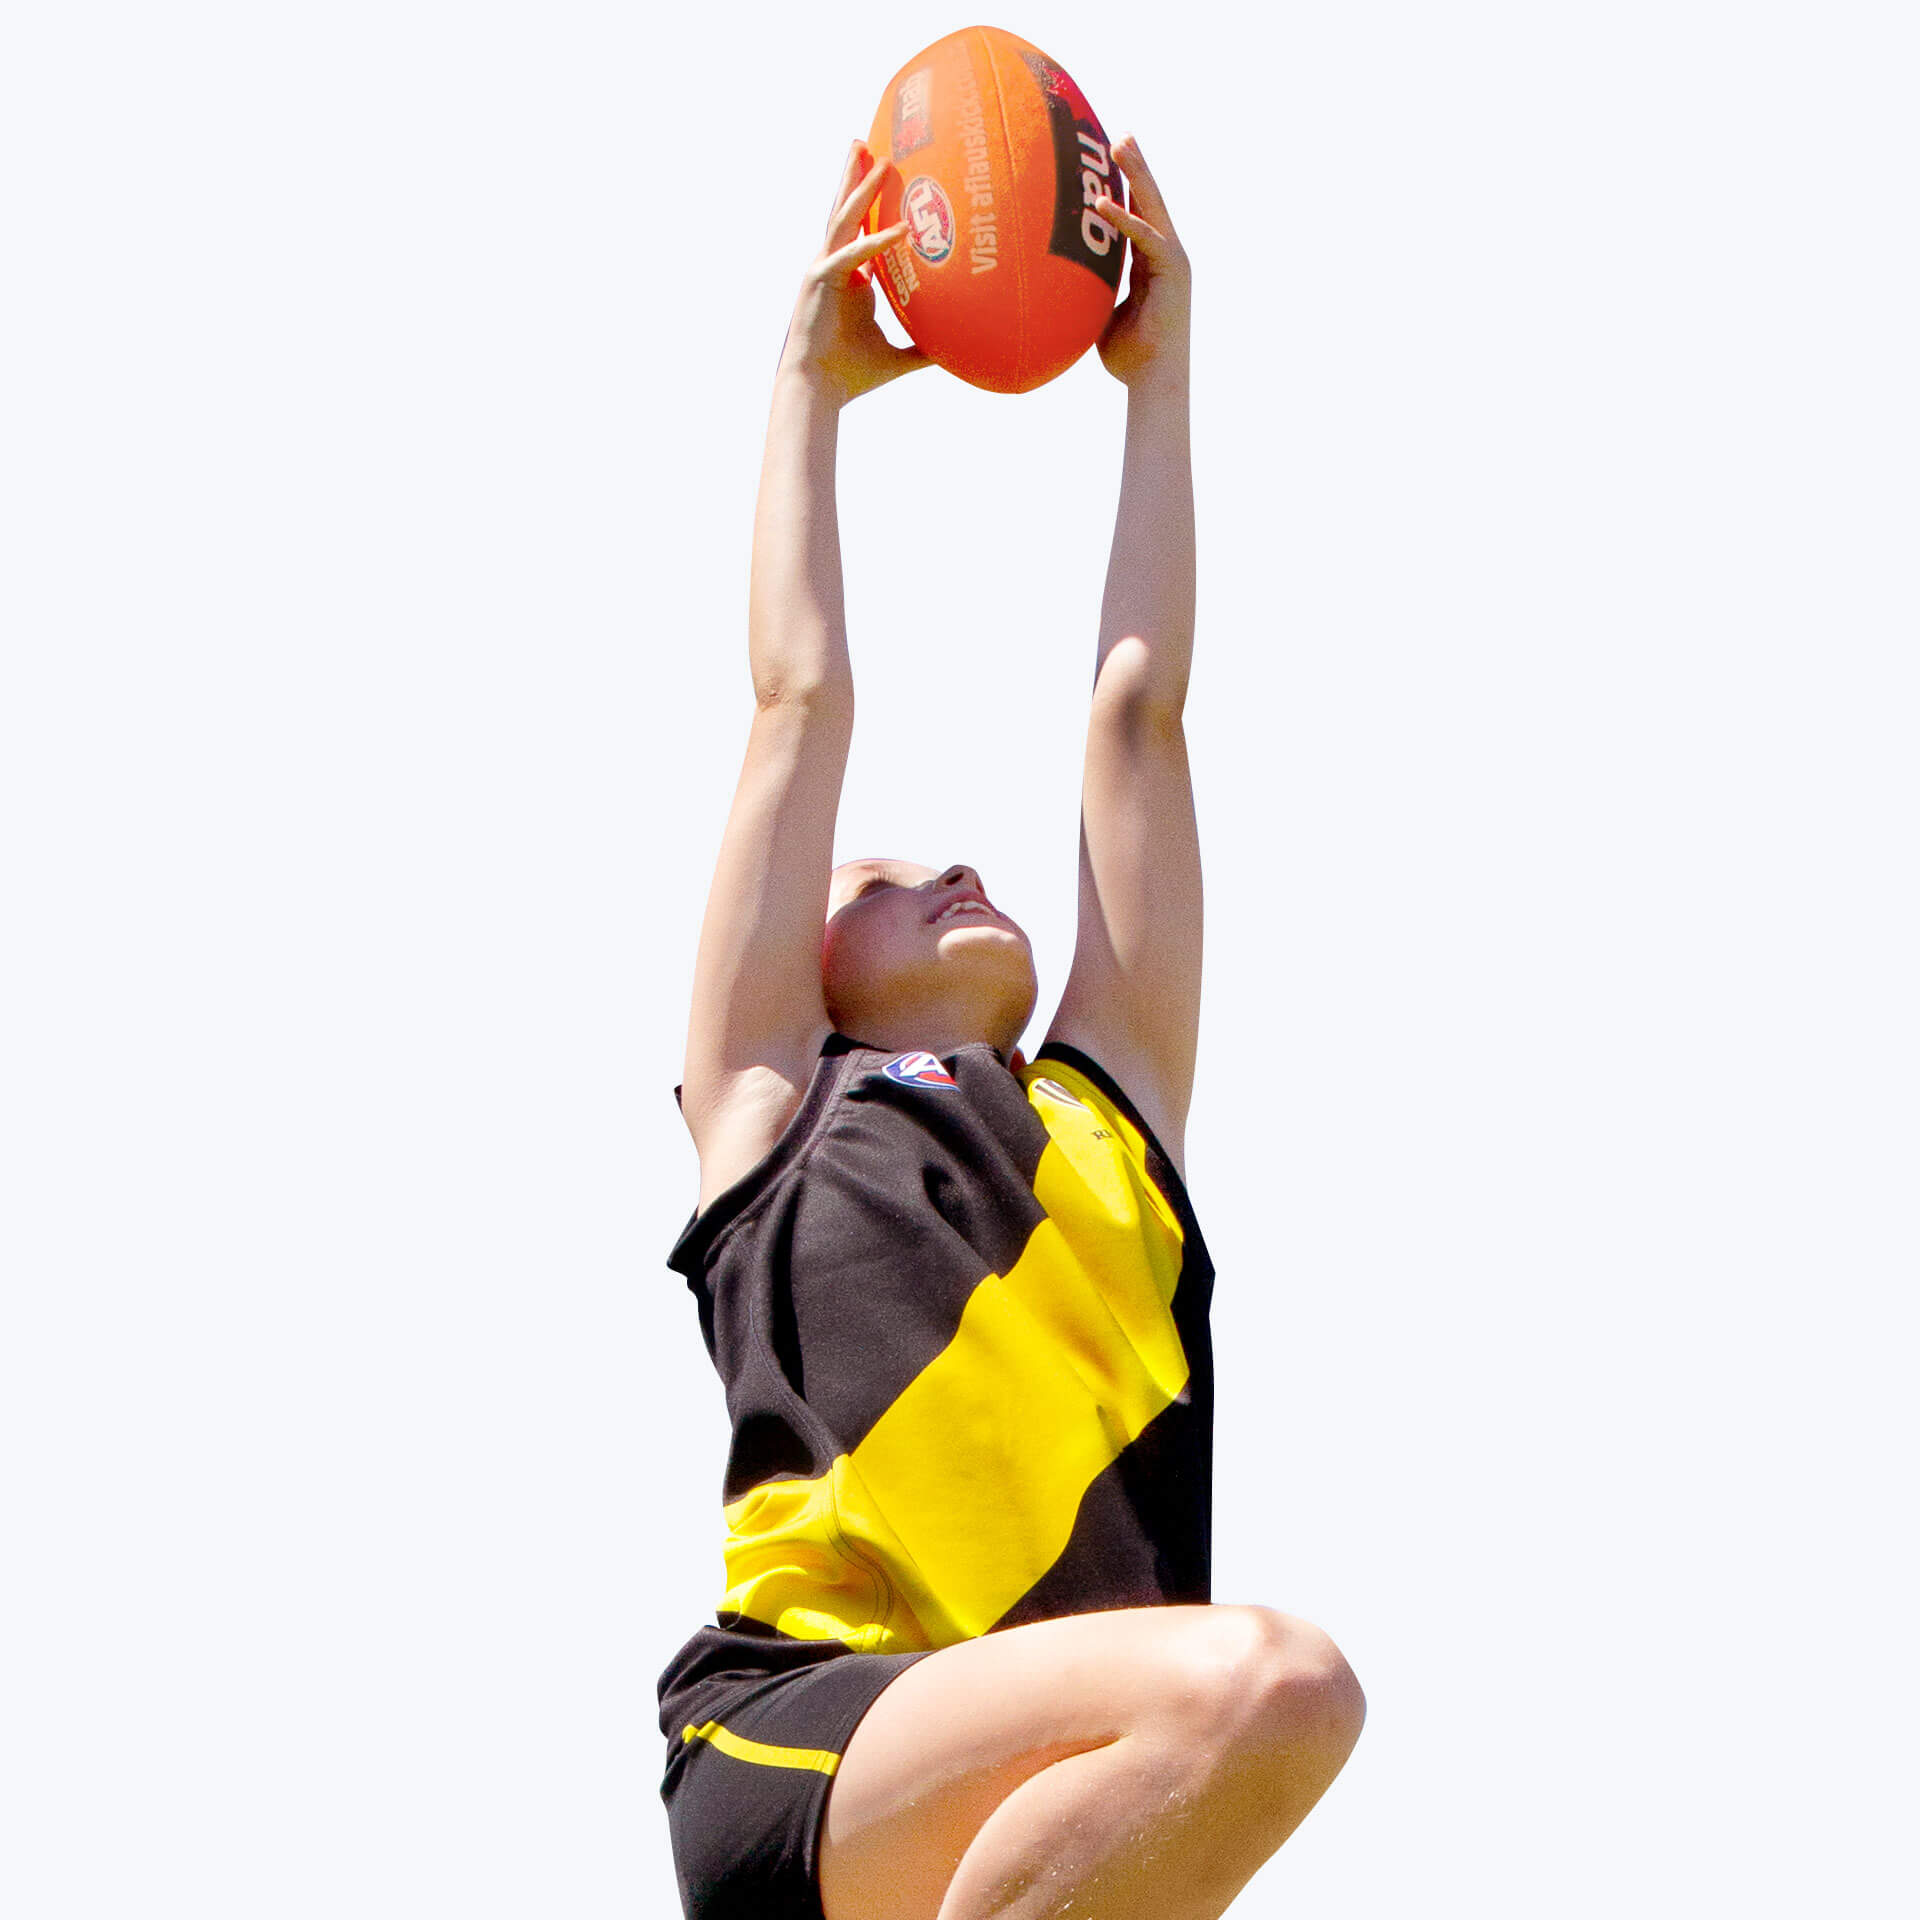 A girl leaping to catch a ball